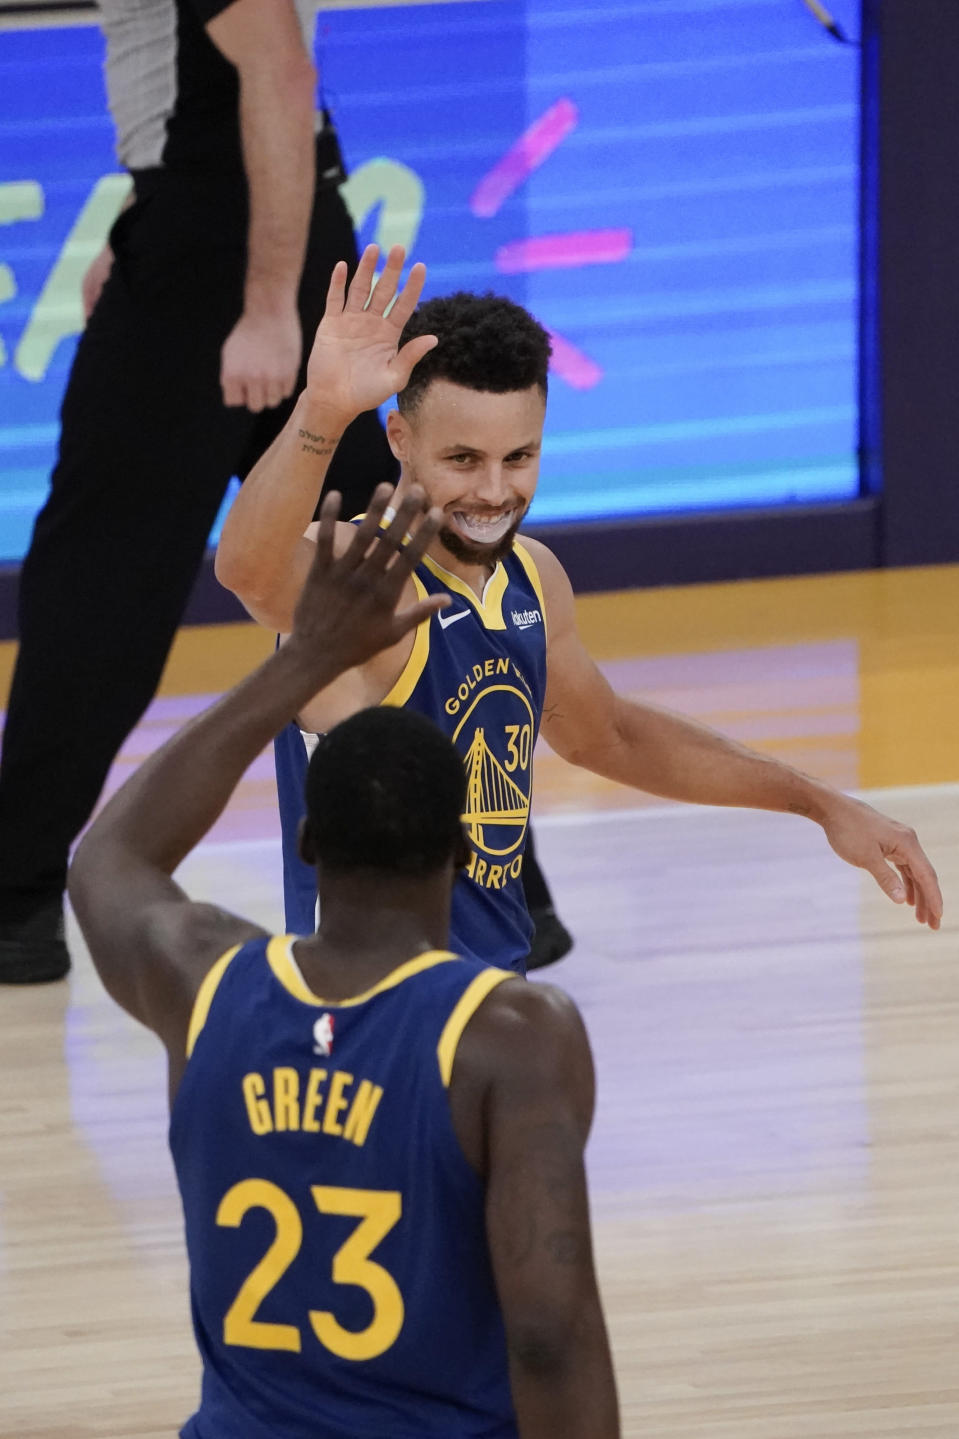 Golden State Warriors' Stephen Curry, top, celebrates a basket by Draymond Green during the second half of an NBA basketball game against the Los Angeles Lakers, Monday, Jan. 18, 2021, in Los Angeles. The Warriors won 115-113. (AP Photo/Jae C. Hong)